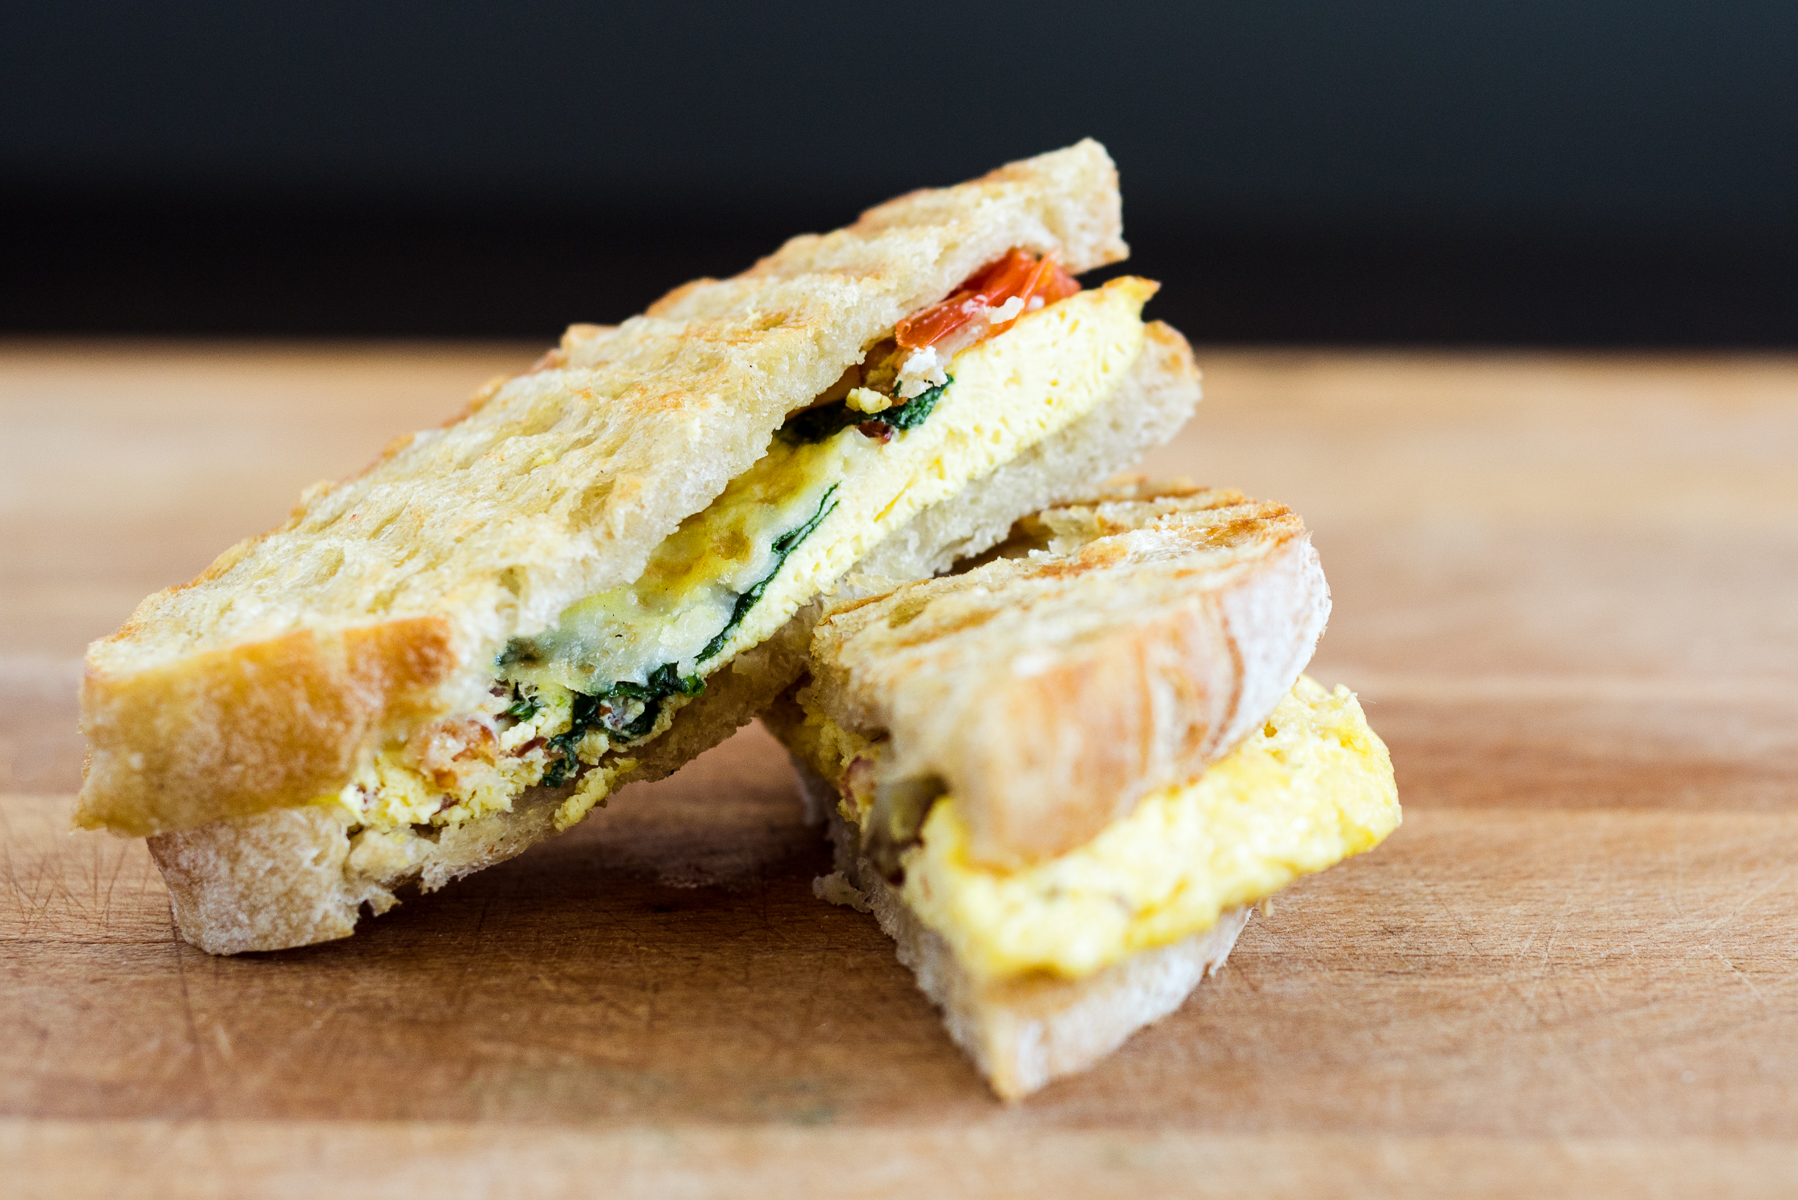 A panini from Mici Handcrafted Italian in Denver, CO.